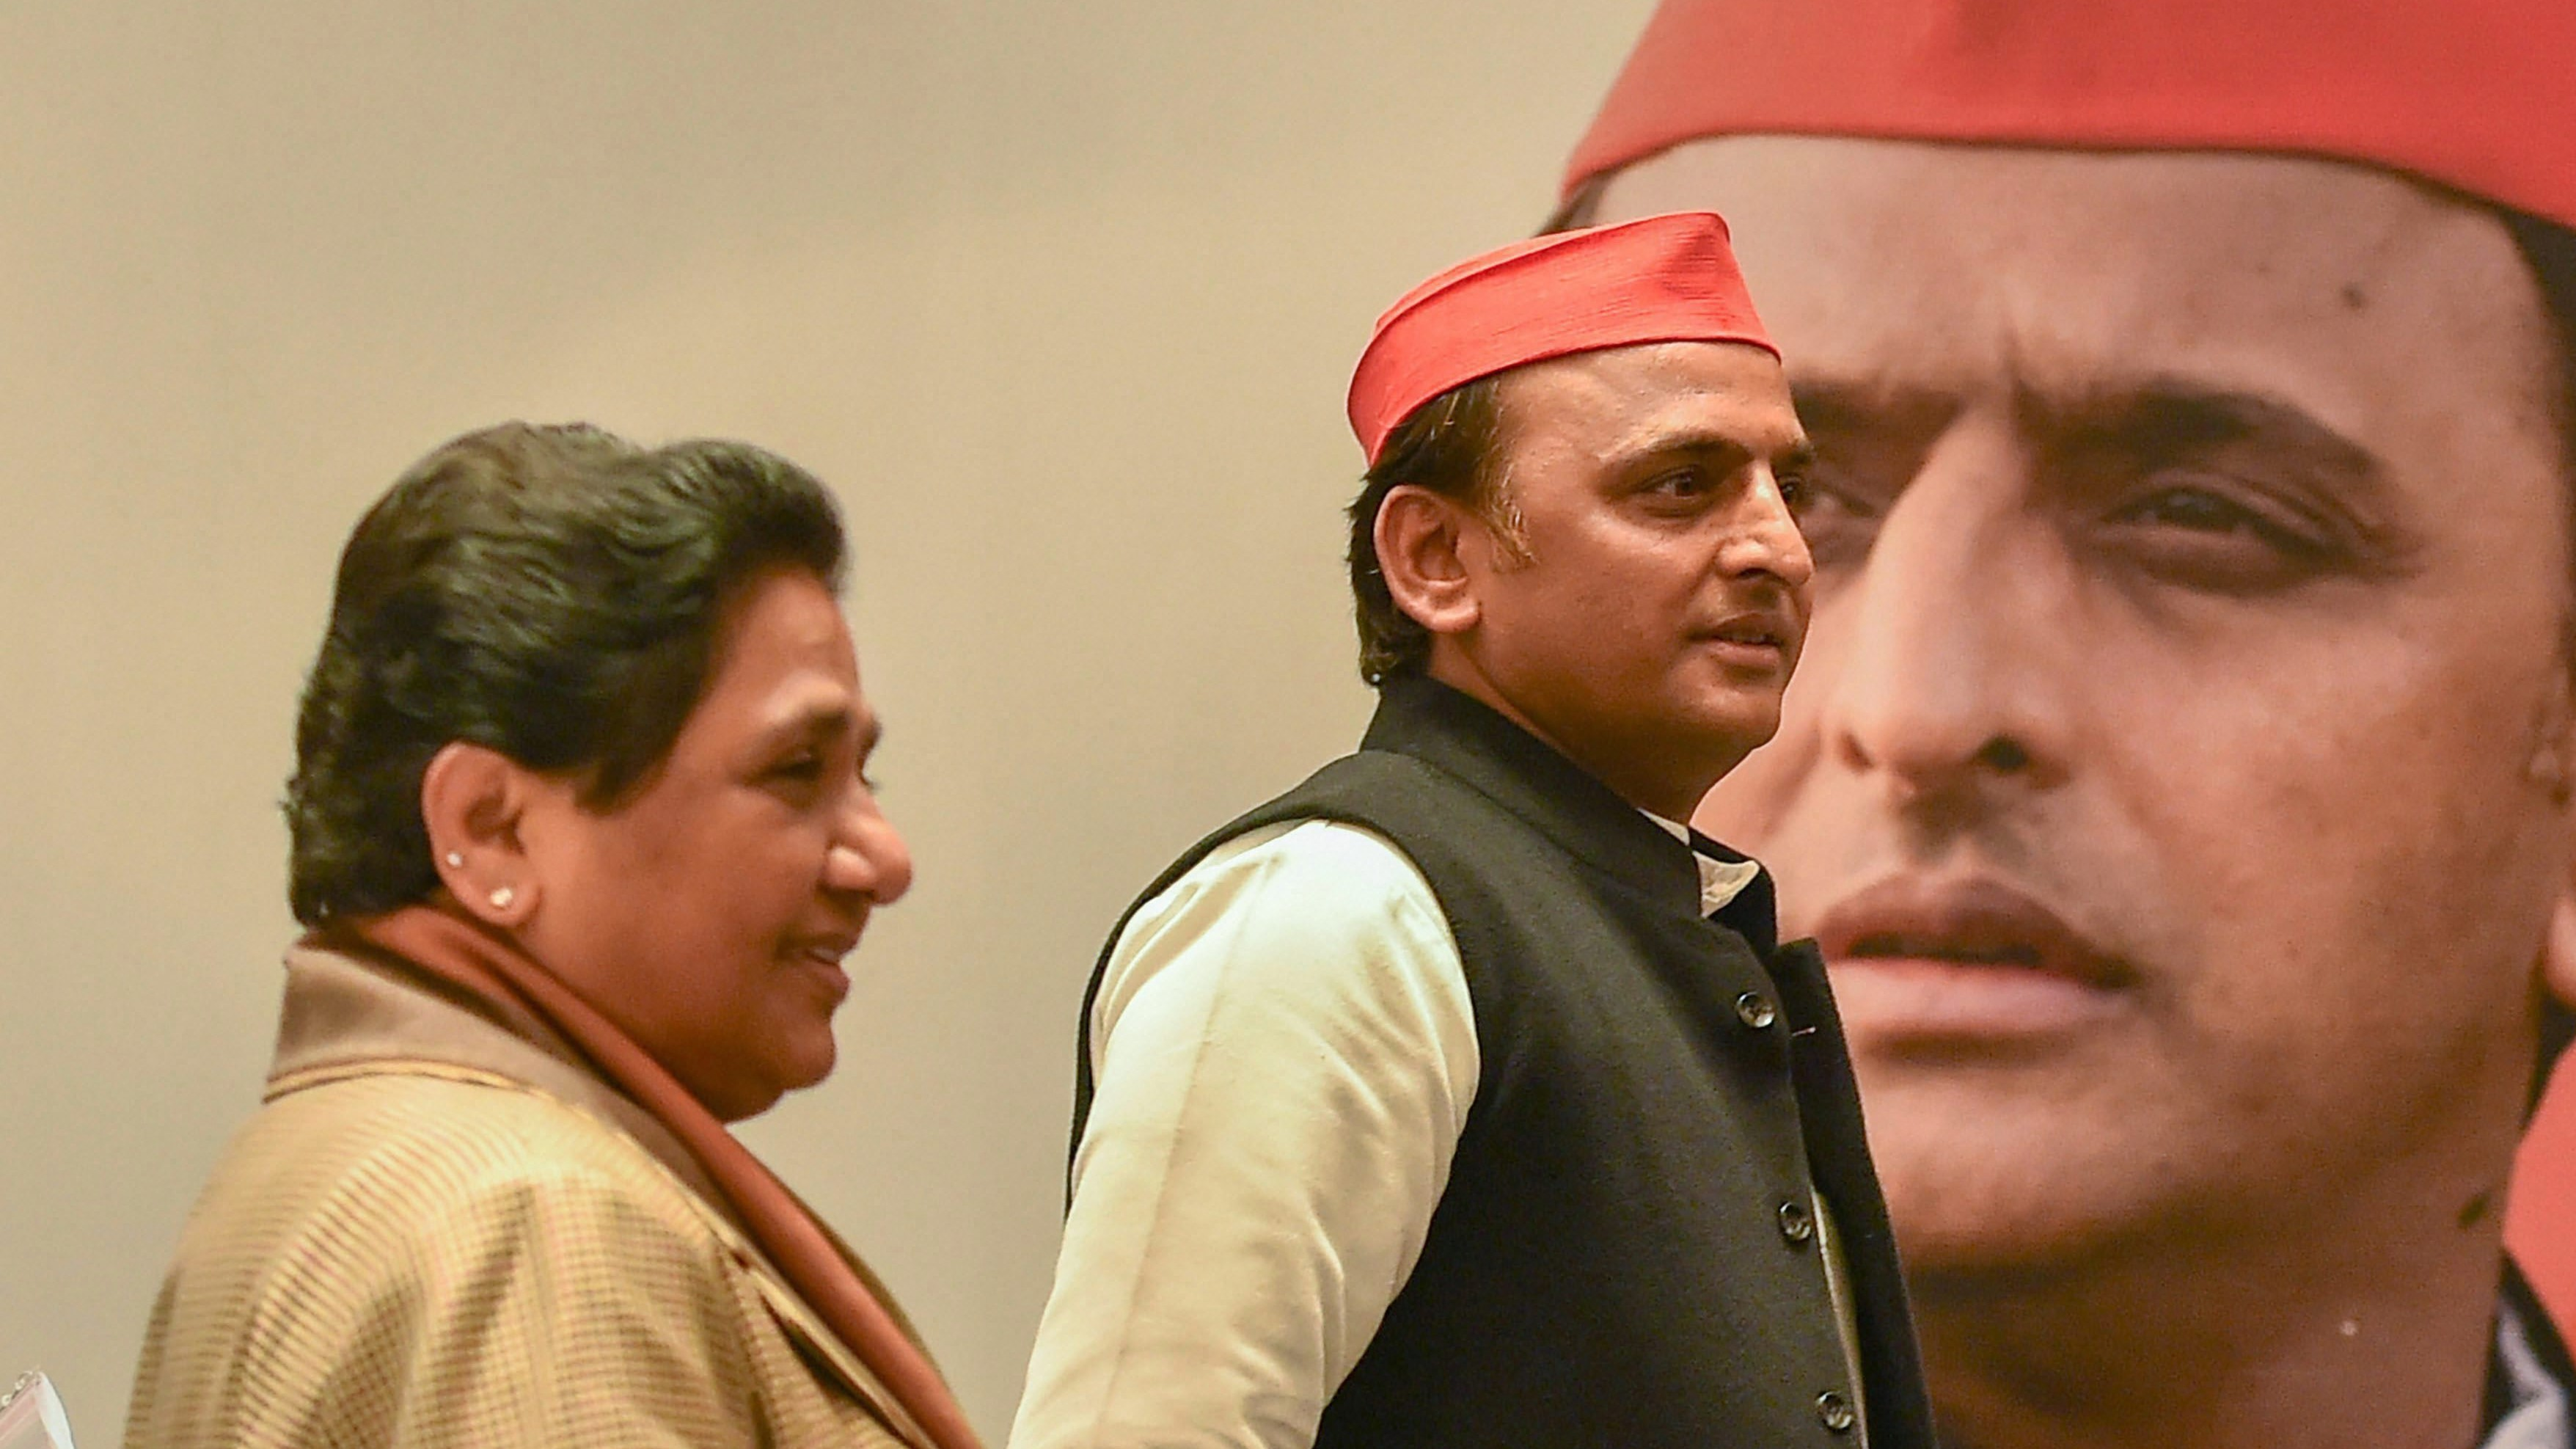 By joining hands, regional leaders could loosen the BJP's grip on the Lok Sabha